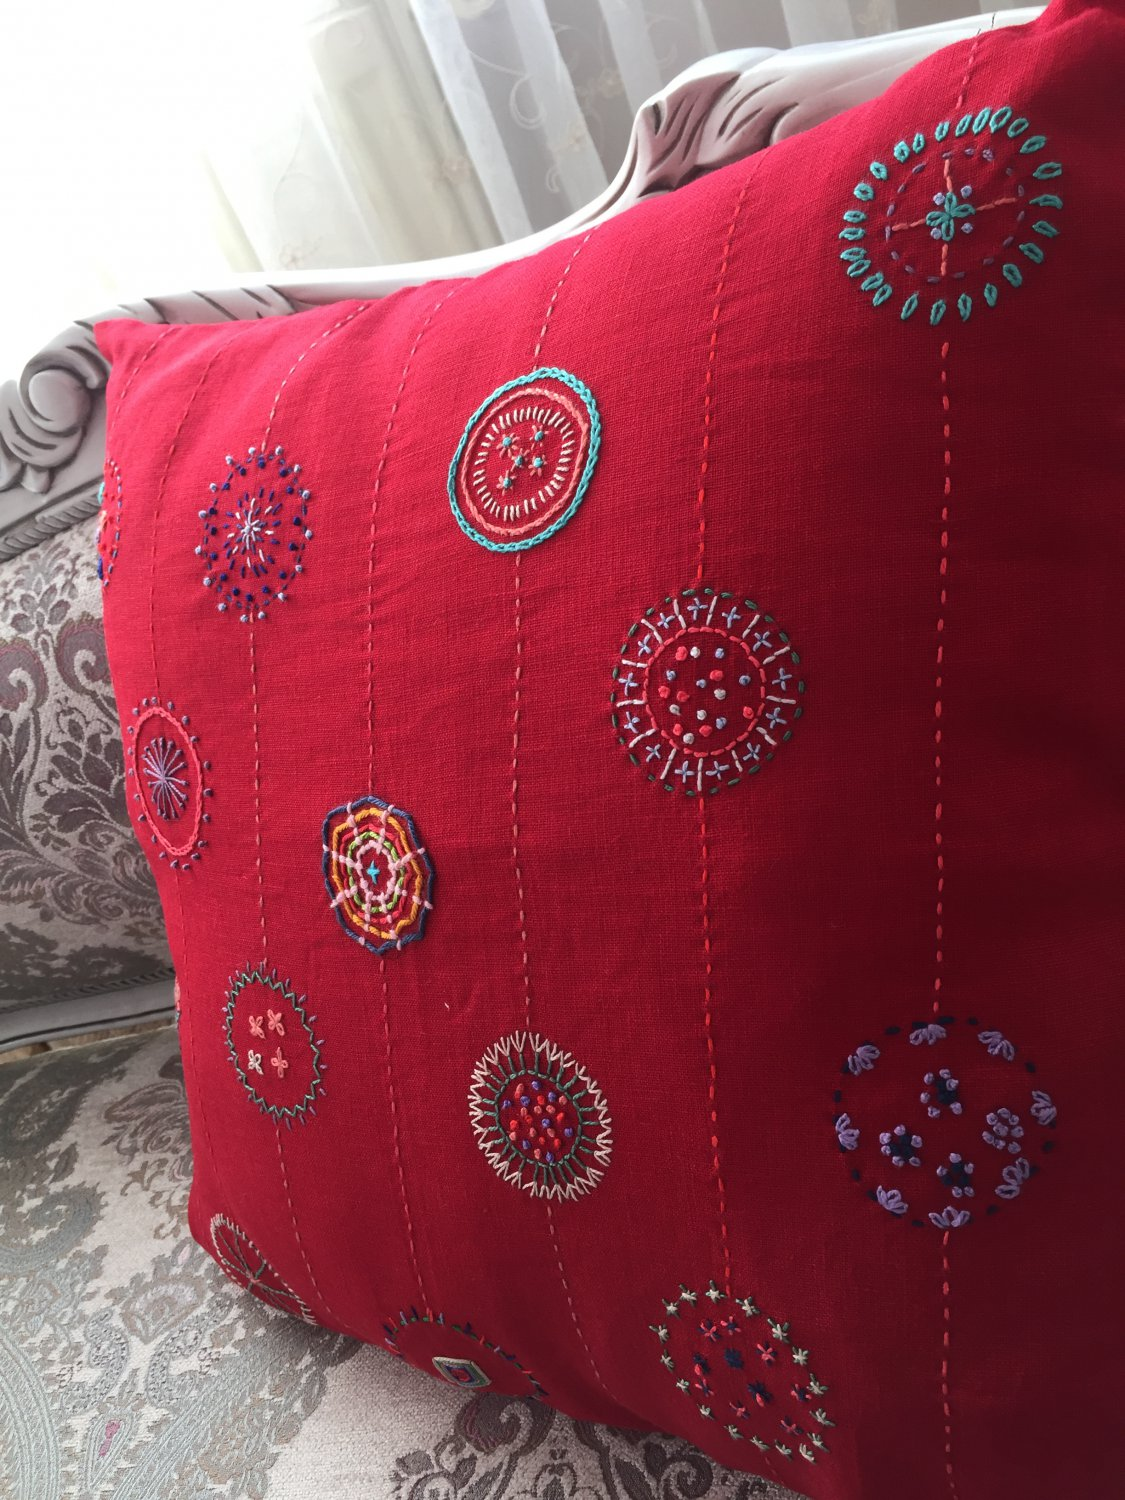 Decorative Pillow Cover for Christmas- Elegant Red